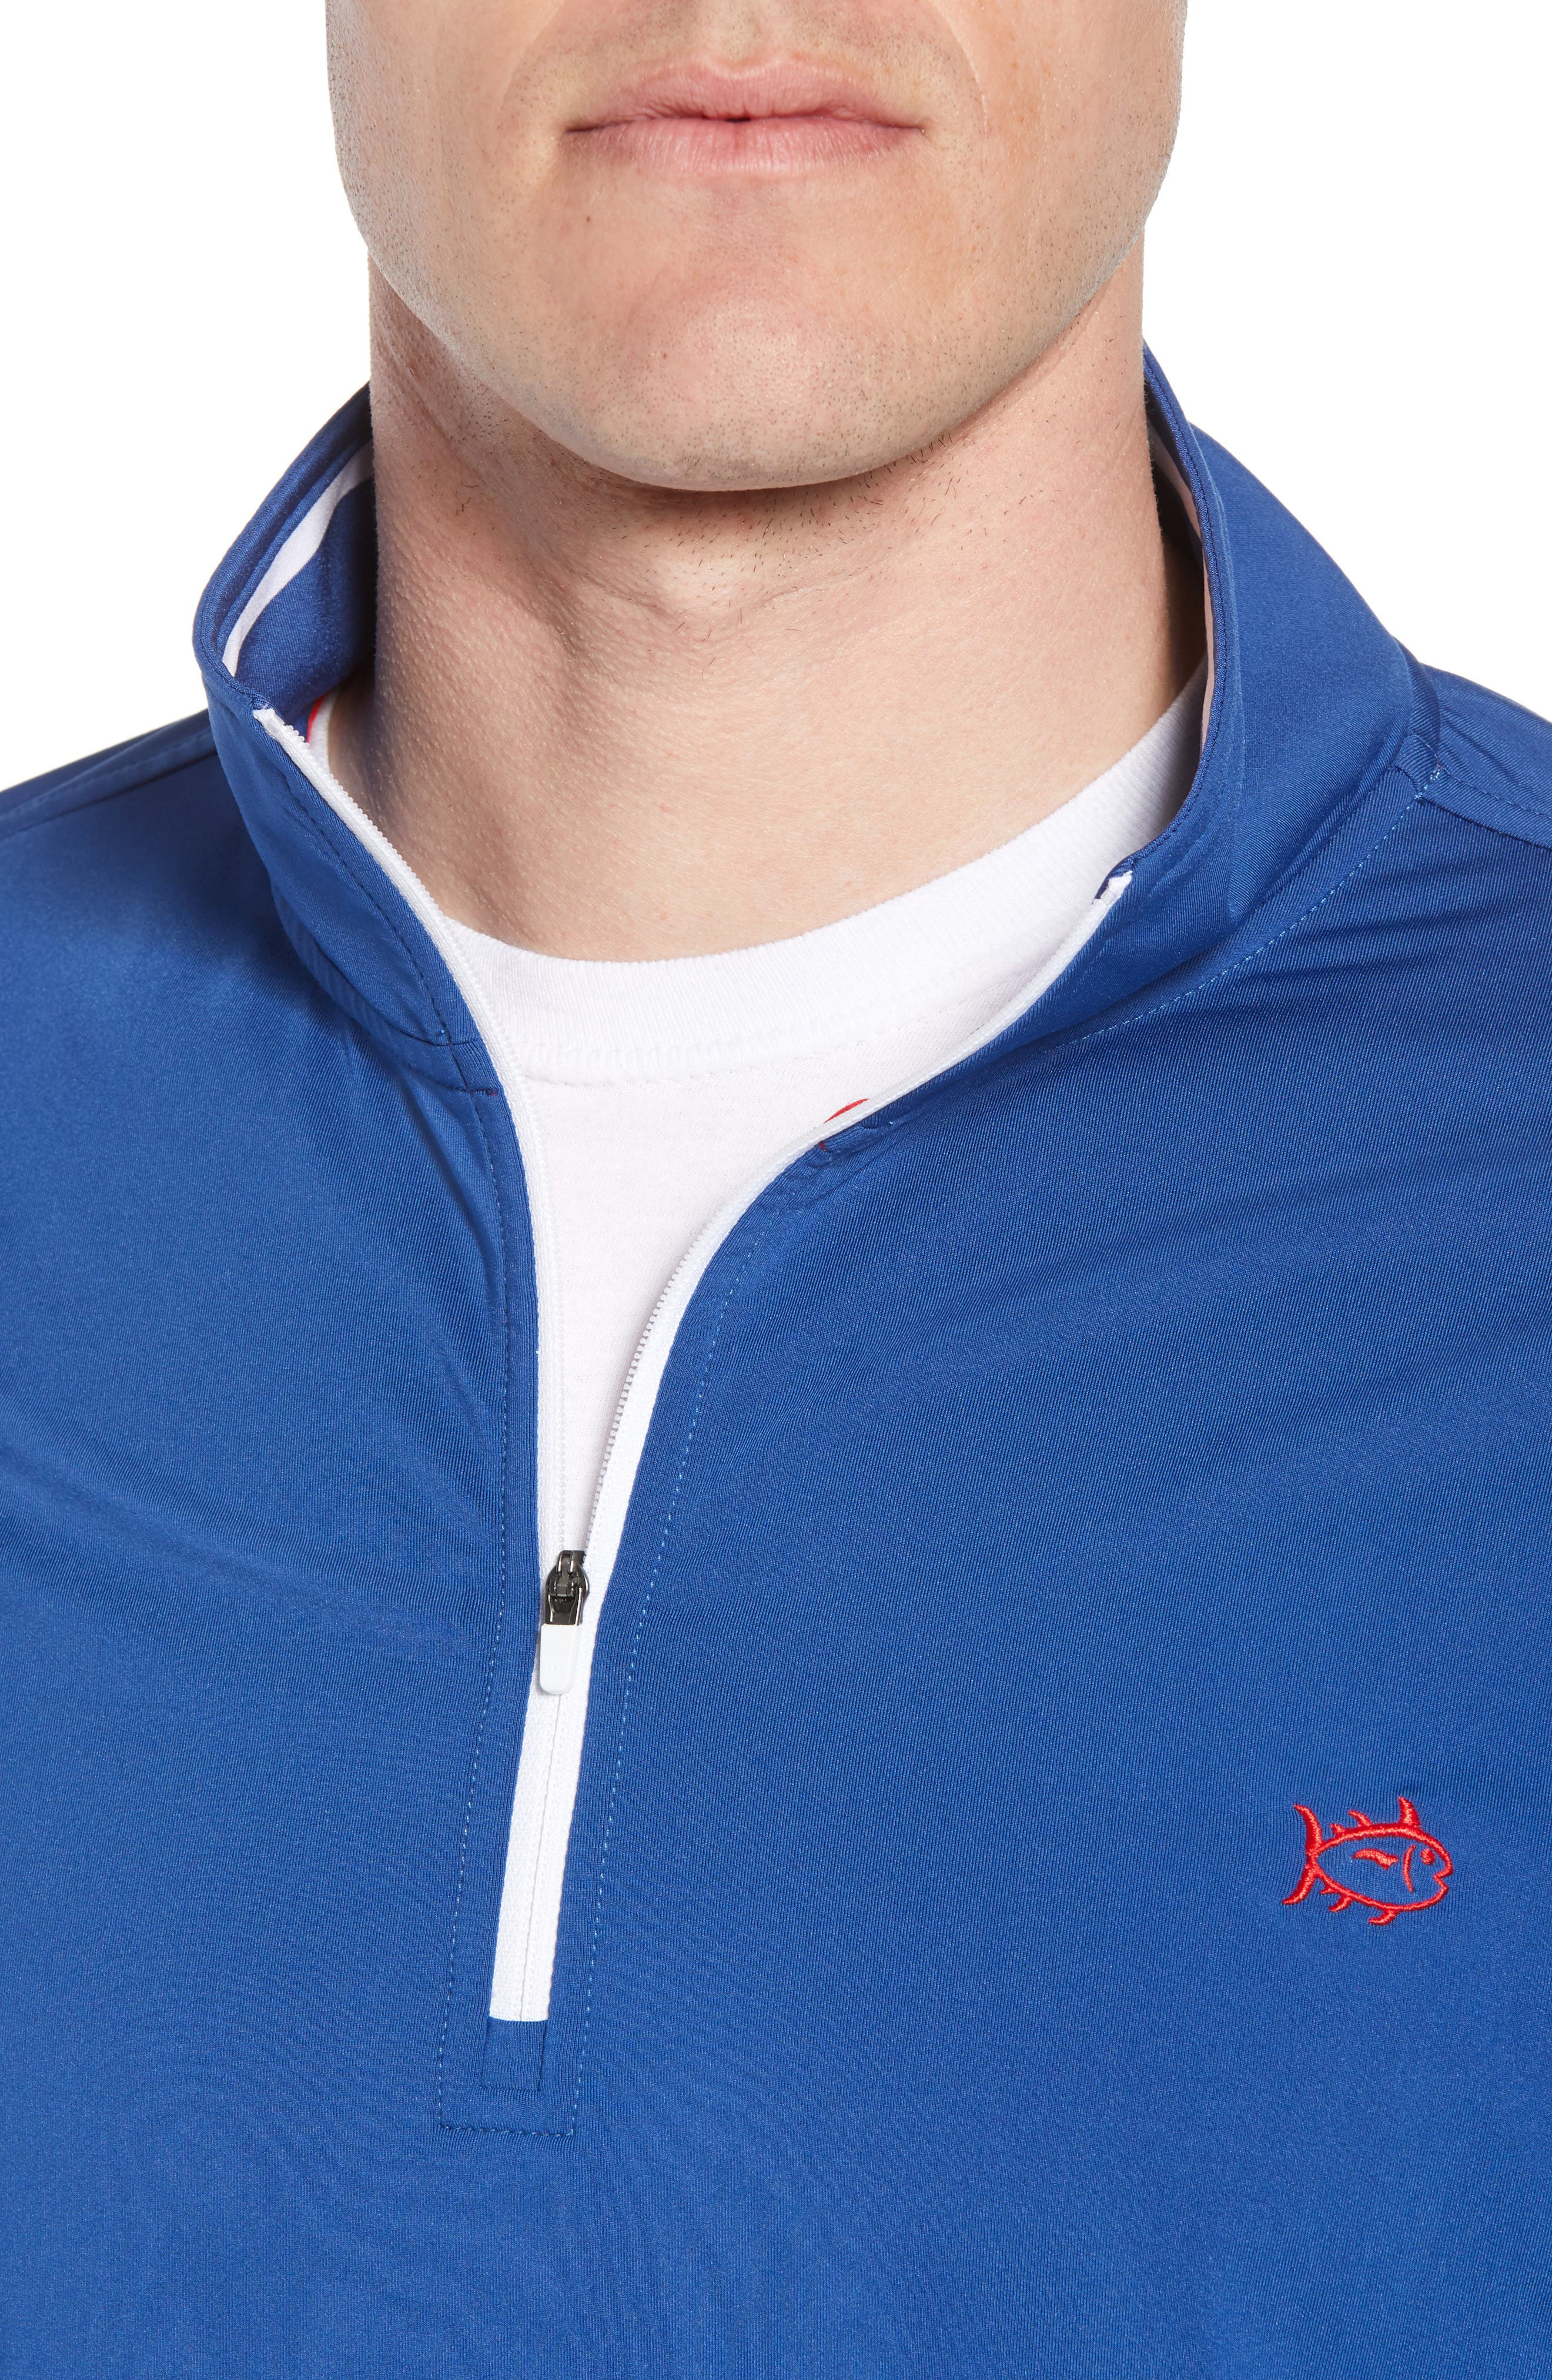 USA Performance Quarter-Zip Pullover,                             Alternate thumbnail 4, color,                             400